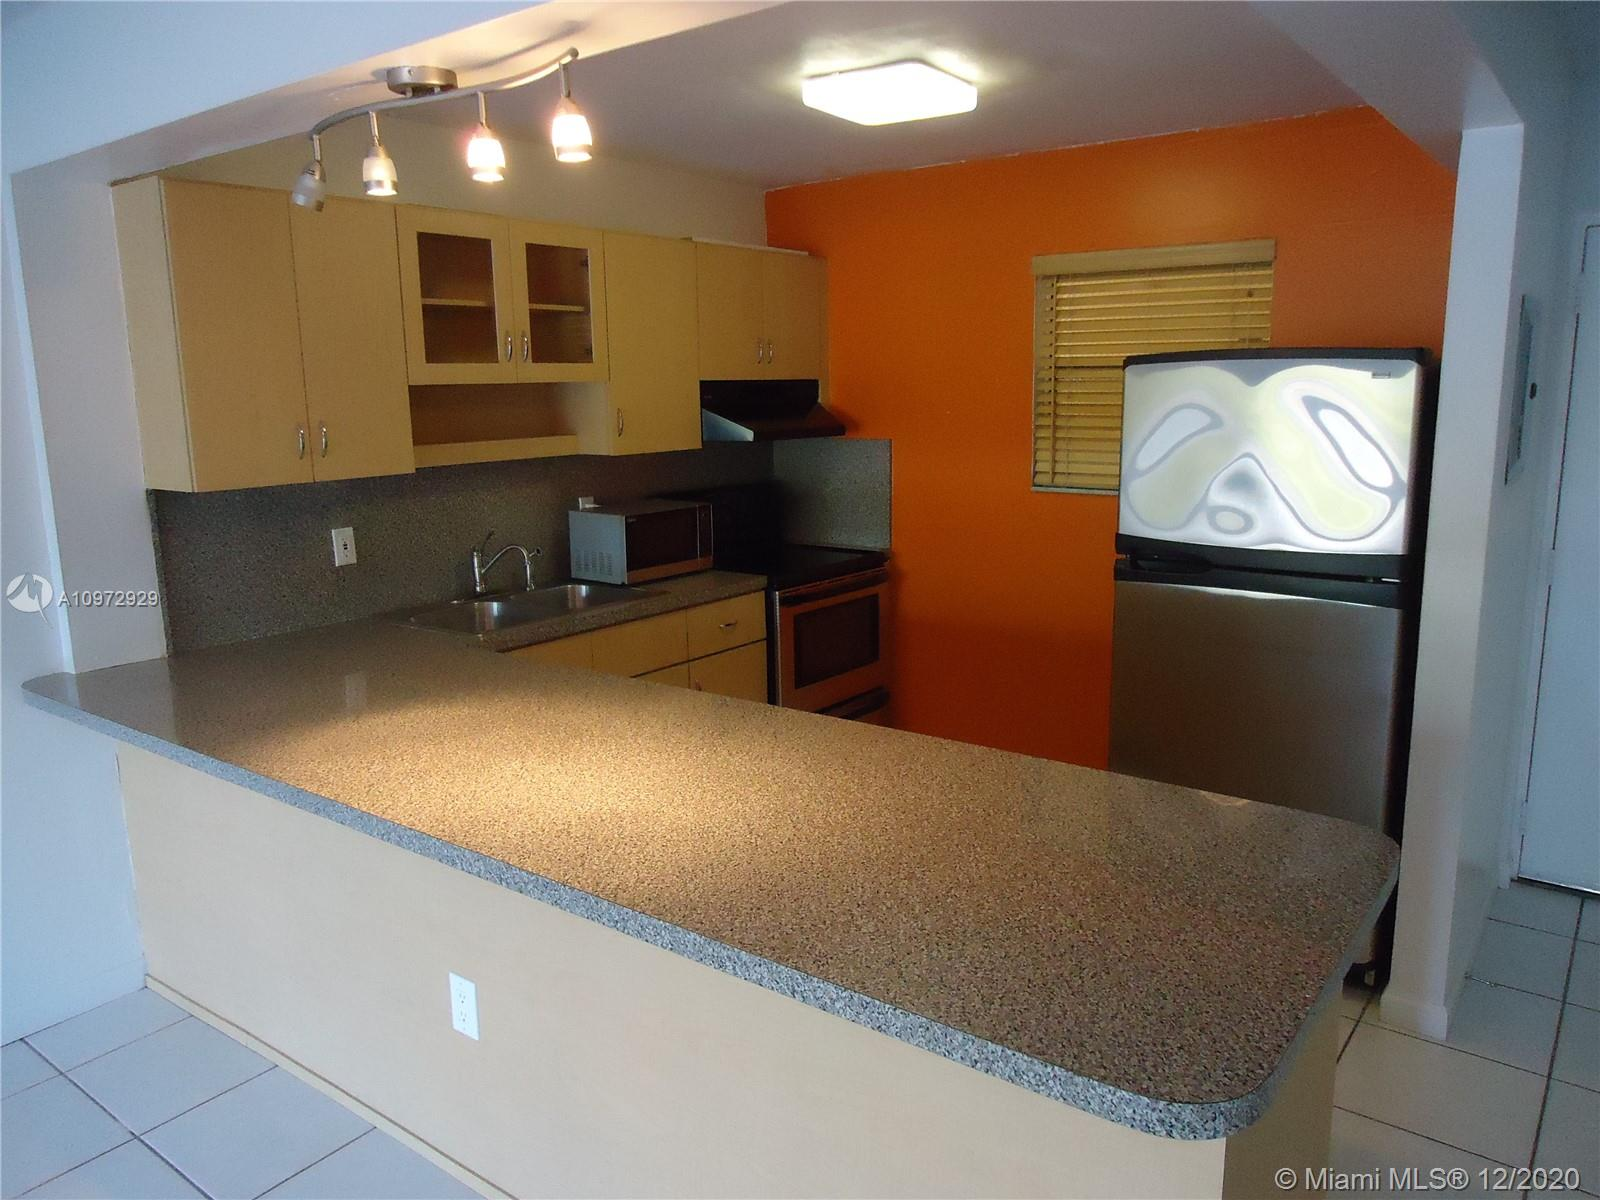 2/1 corner unit on the 1st floor in the Village of Kings Creek. Open Kitchen with lots of storage, The bathroom was completely redone with beautiful marble tiles. New impact windows and sliding glass doors. the community offers plenty of amenities, 4 pools, tennis courts, racquetball court, clubhouse, 24 hours patrolled security. Excellent location next to major highways, near Baptist hospital, Dadeland Mall, and public transit. Great investment, low association dues, leased until June 2021.